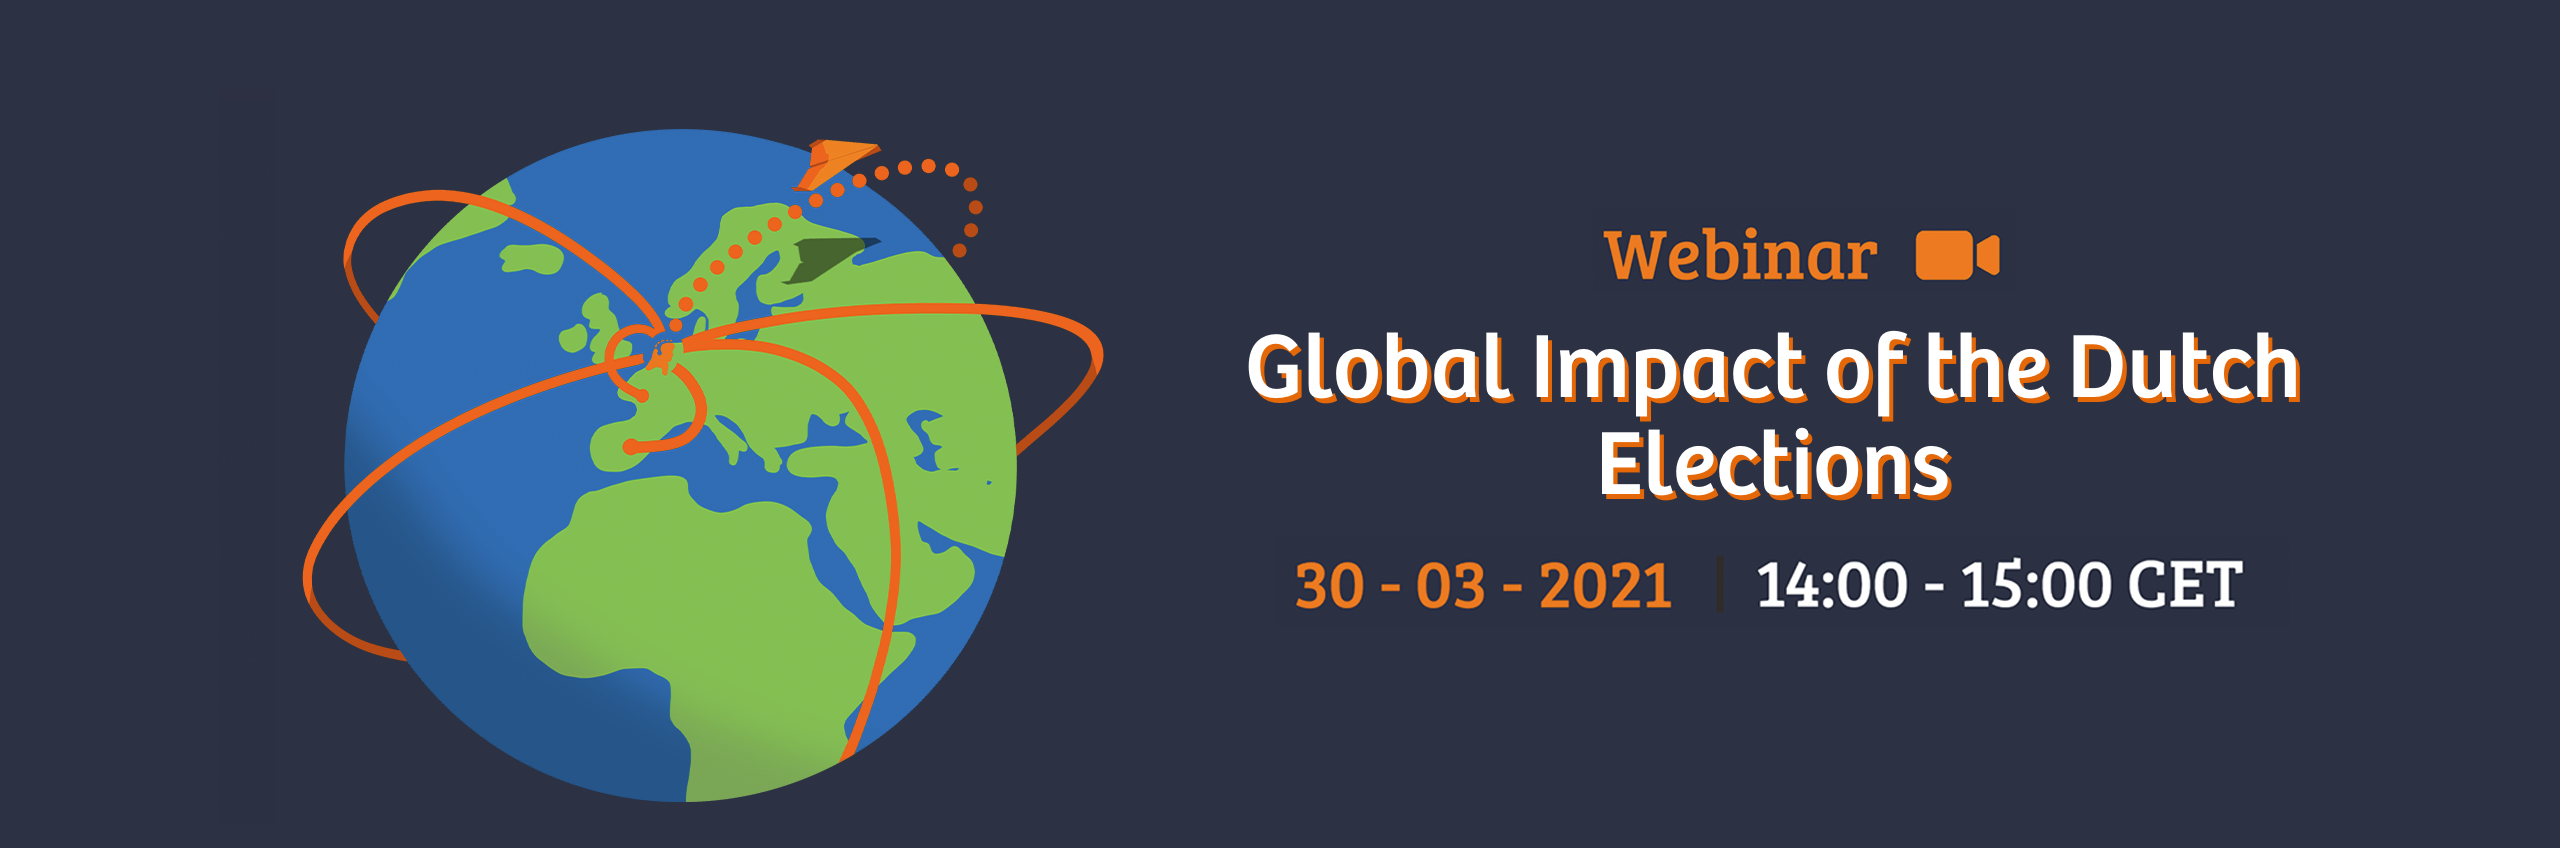 Global Impact of the Dutch Elections